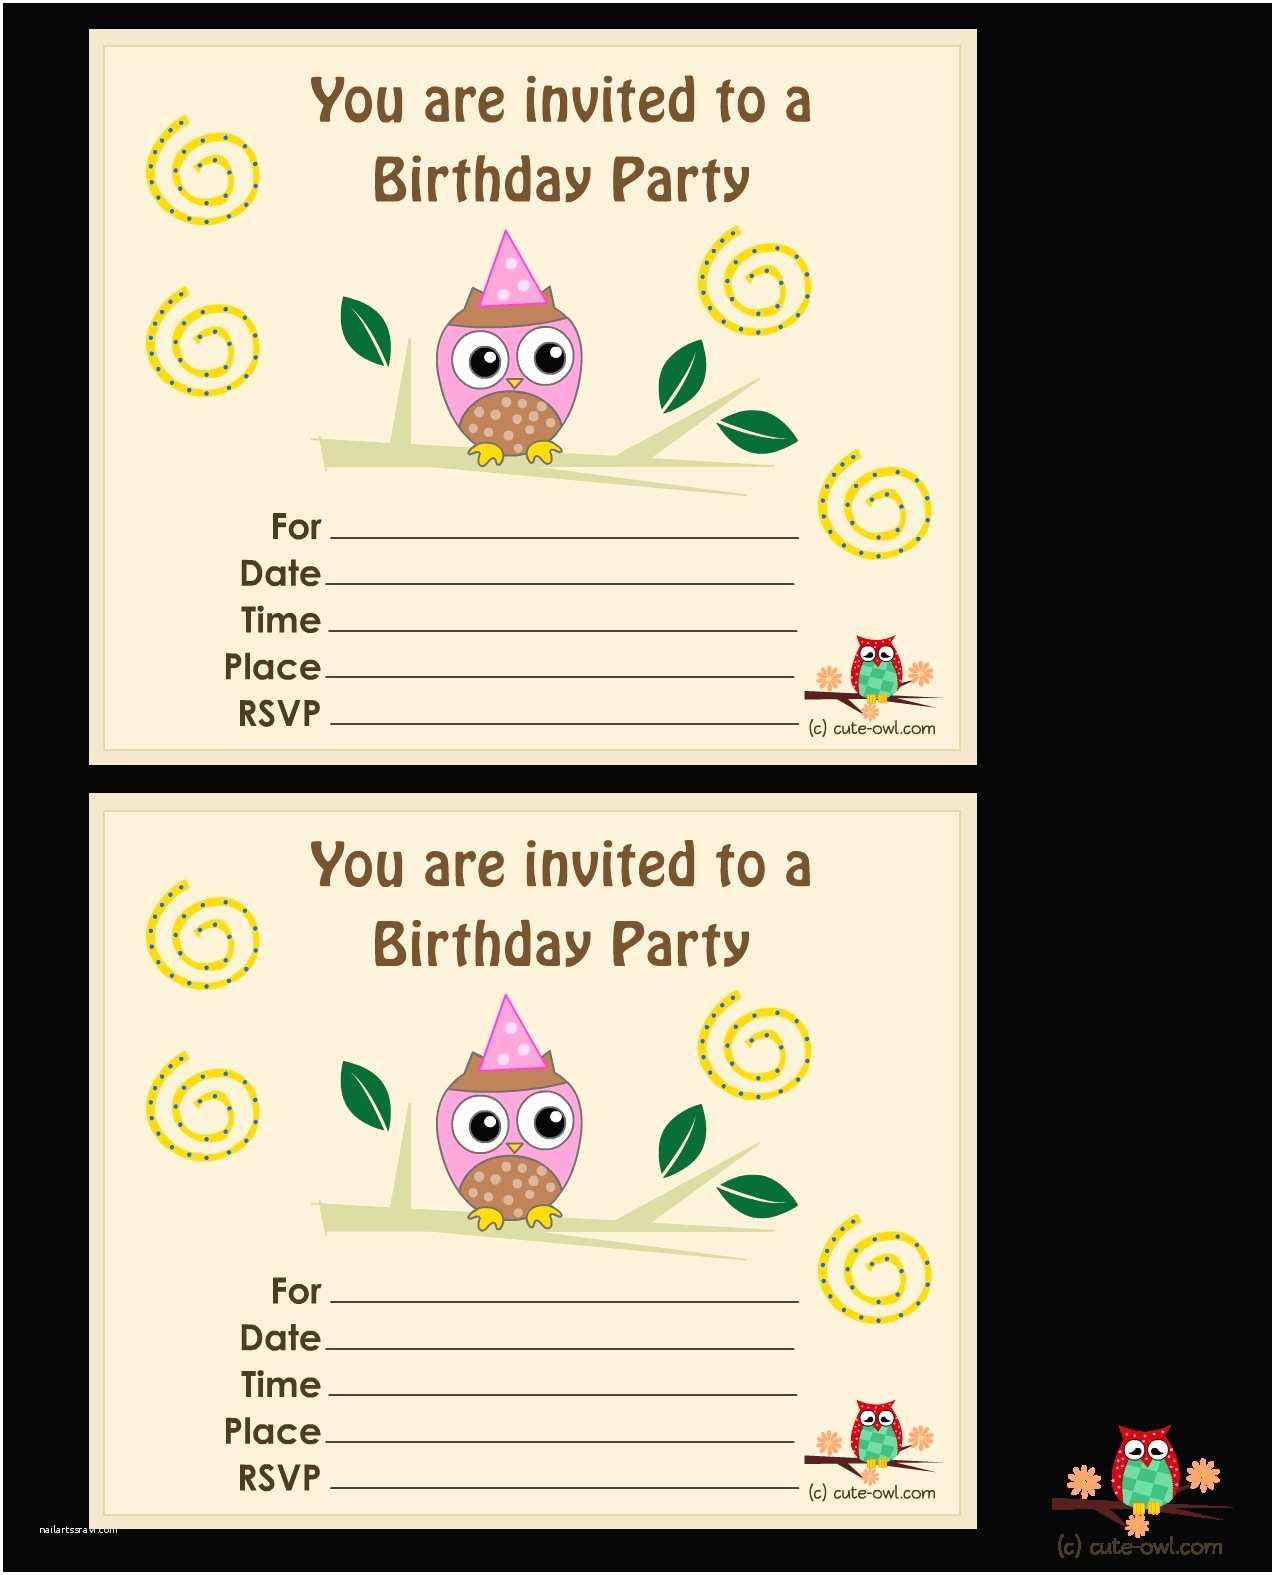 Personalized Birthday Invitations Free Printable Personalized Birthday Invitation Cards